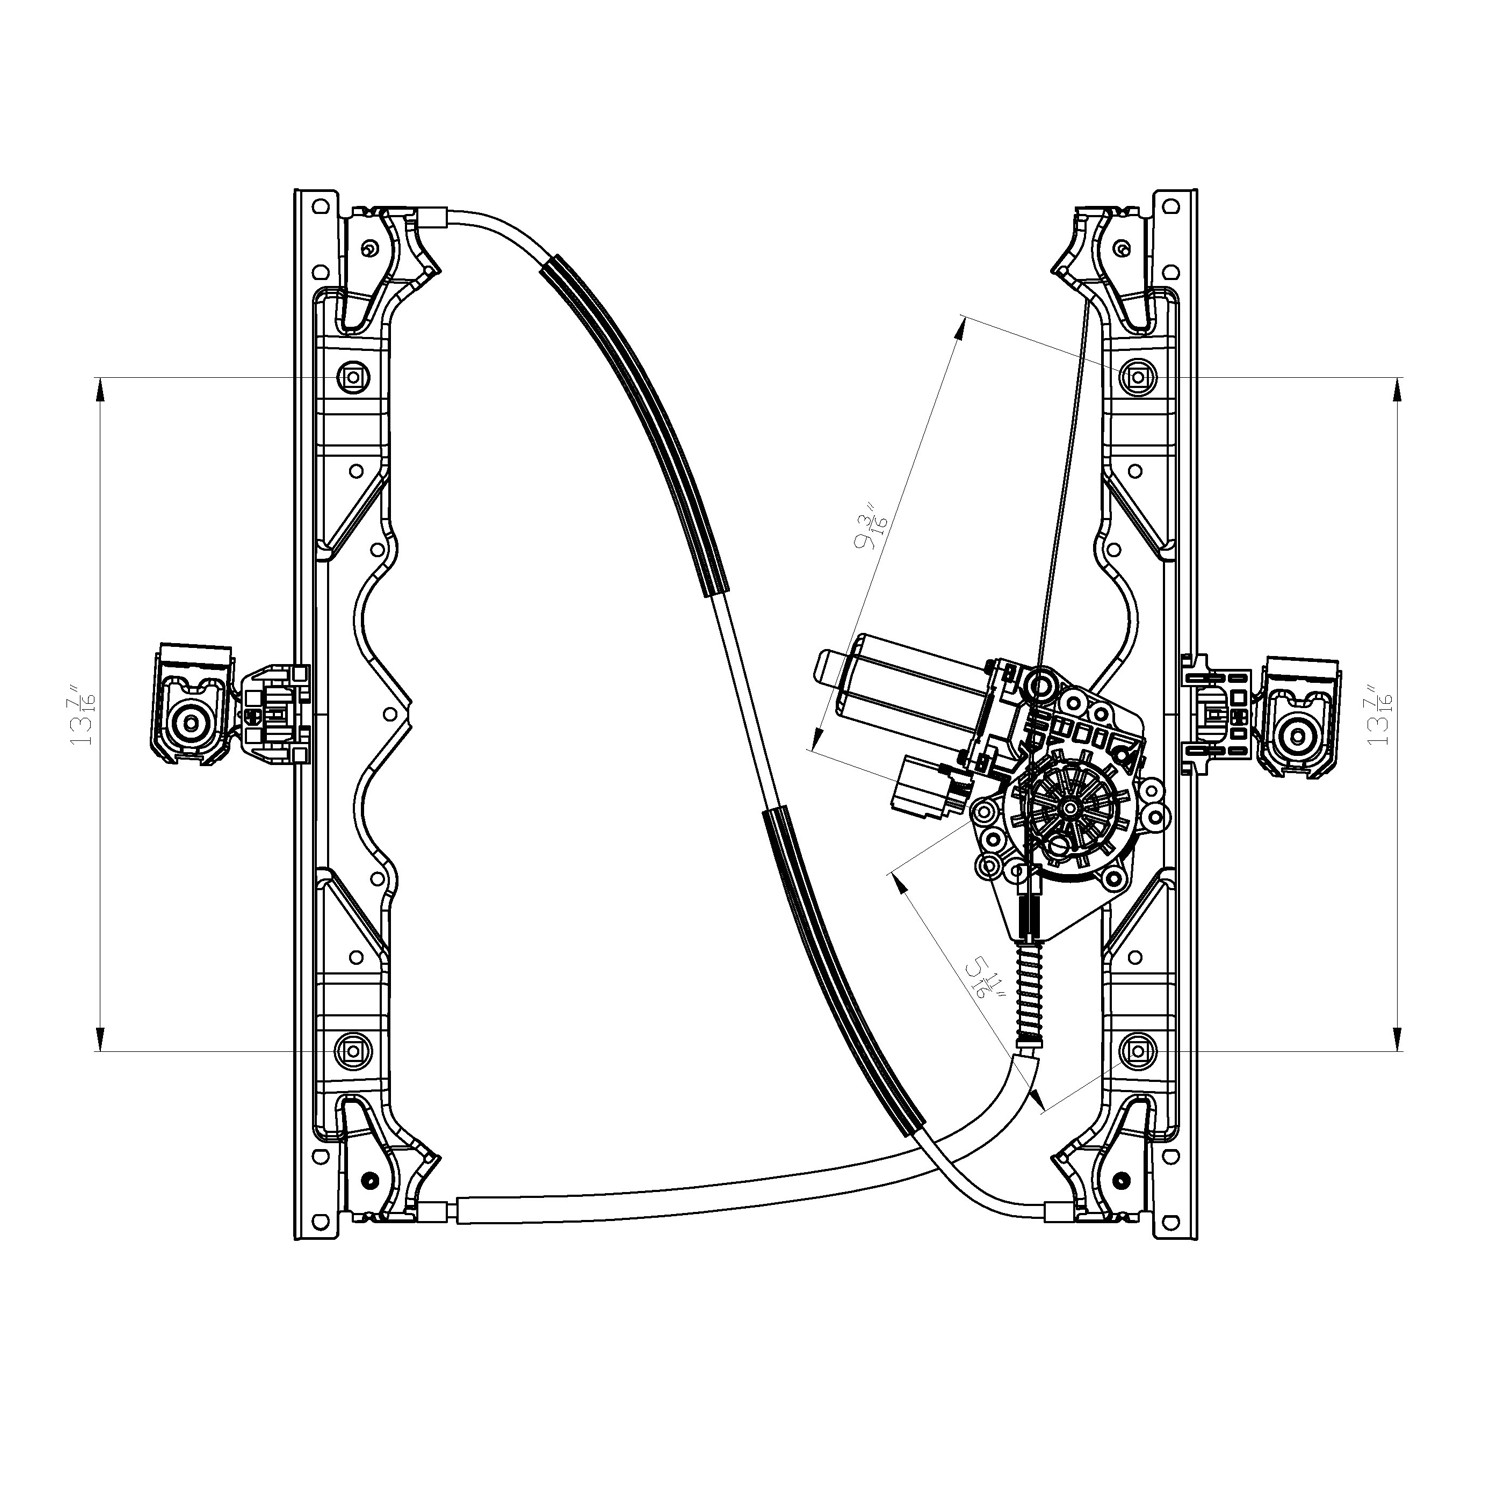 2009 Jeep Grand Cherokee Power Window Motor And Regulator Assembly Engine Diagram Ty 660430